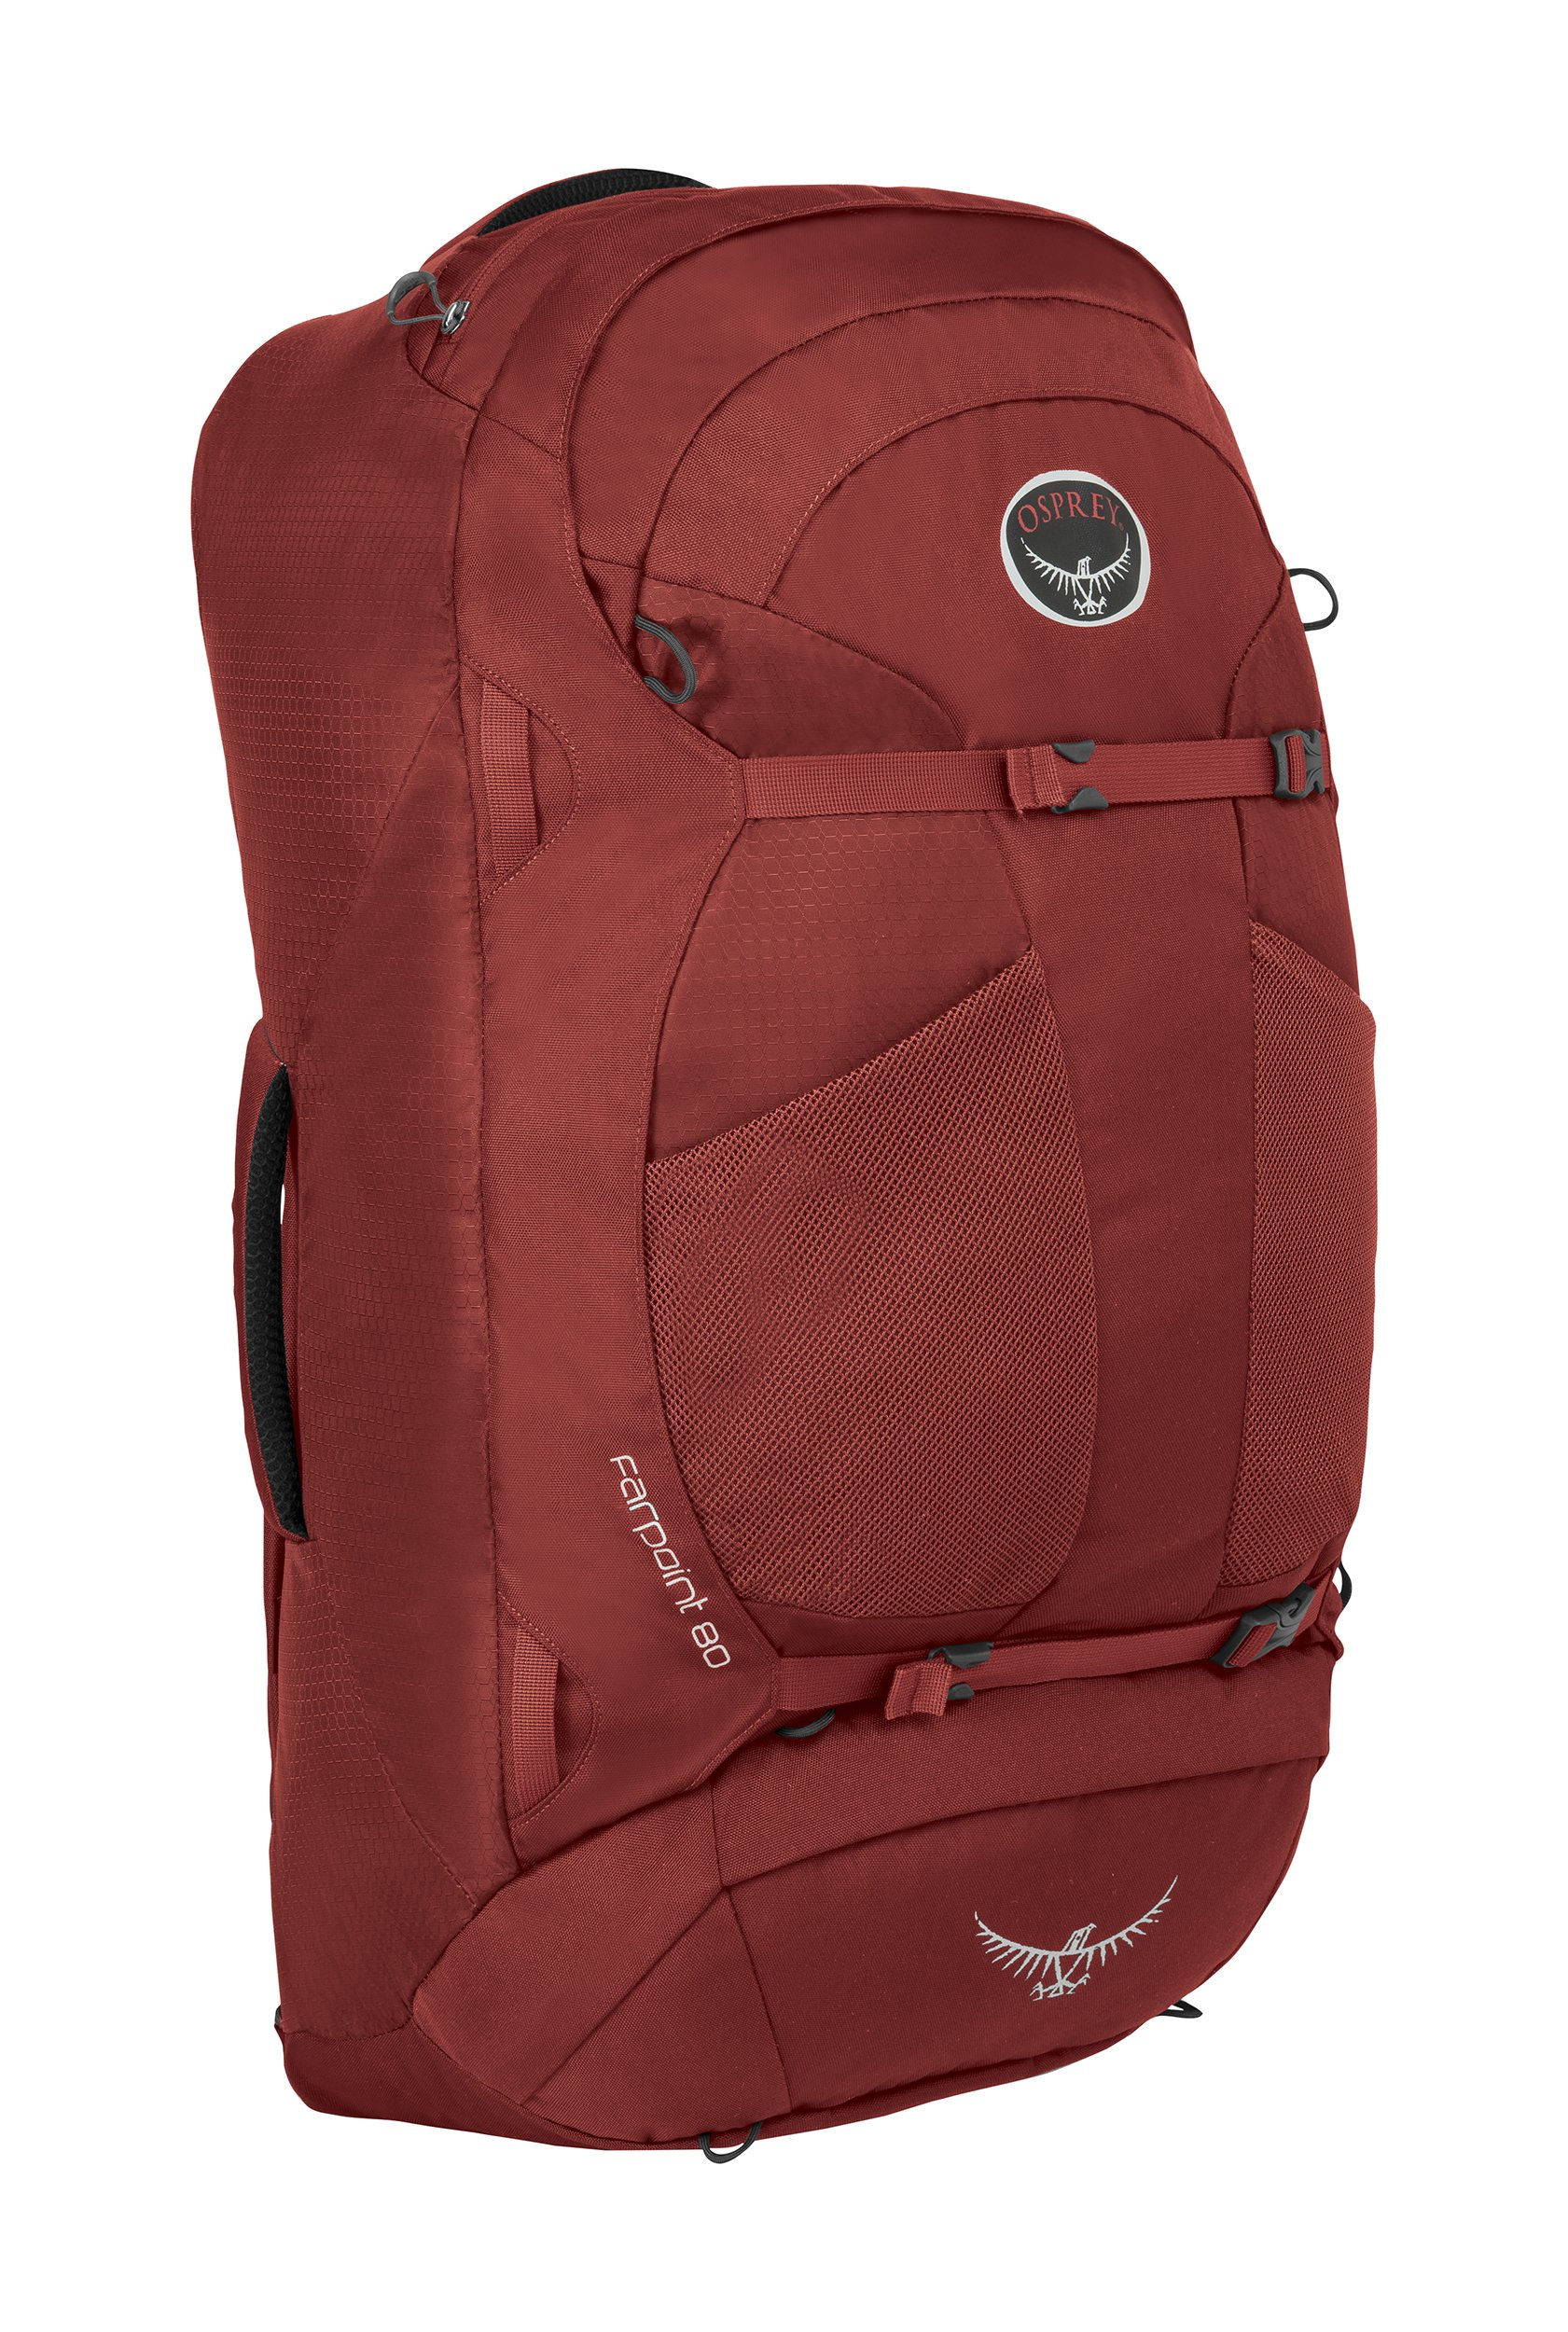 Osprey Packs Farpoint 80 Travel Backpack, Jasper Red, Medium/Large